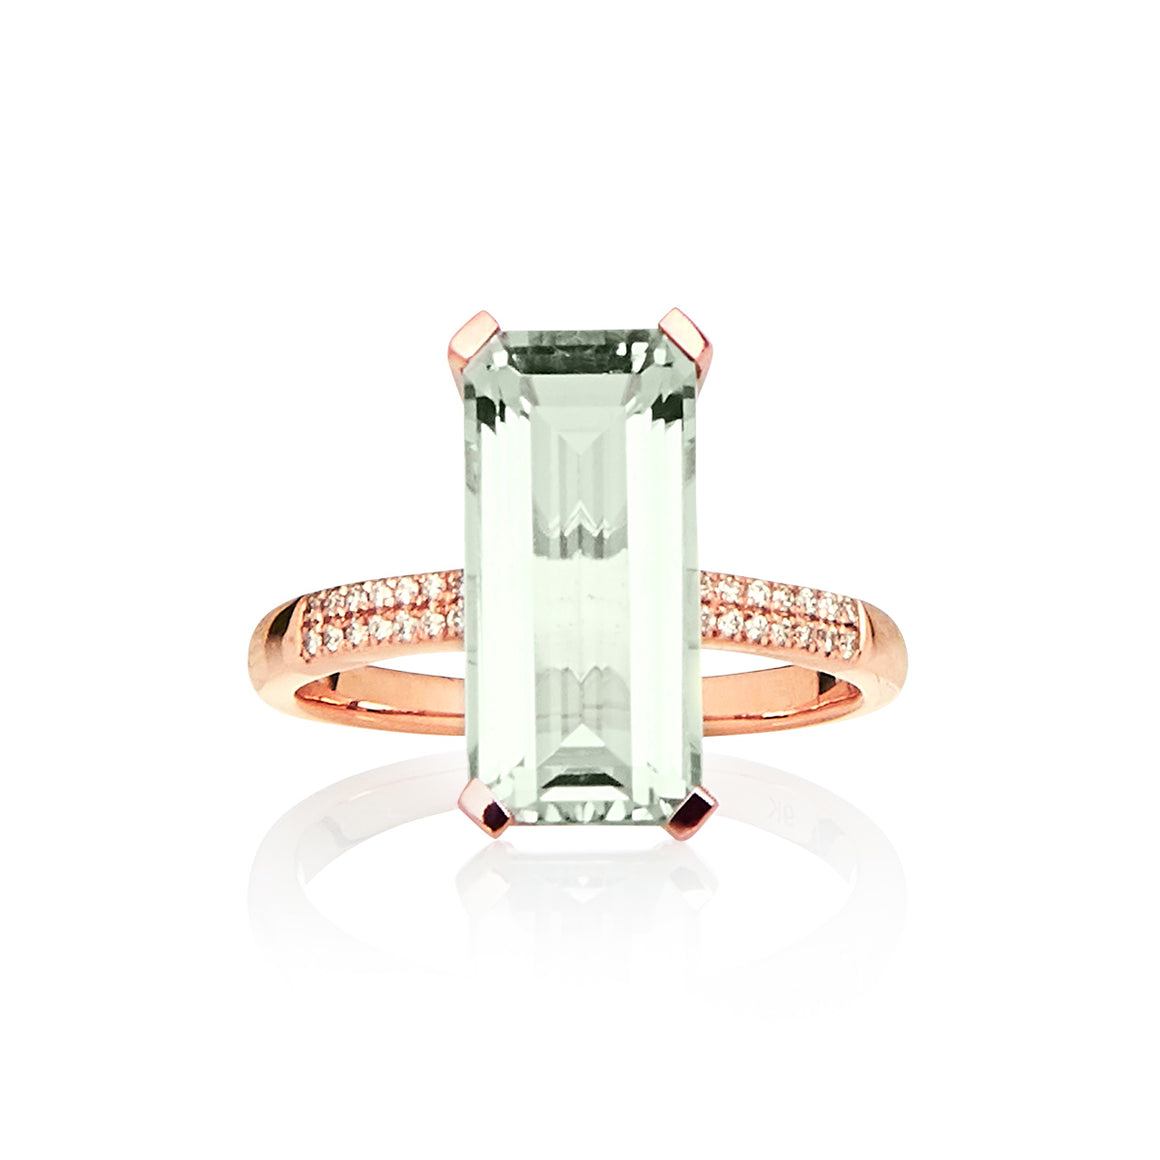 9ct Rose Gold, Green Amethyst & Diamond Ring - Gemma Stone  ABN:51 621 127 866